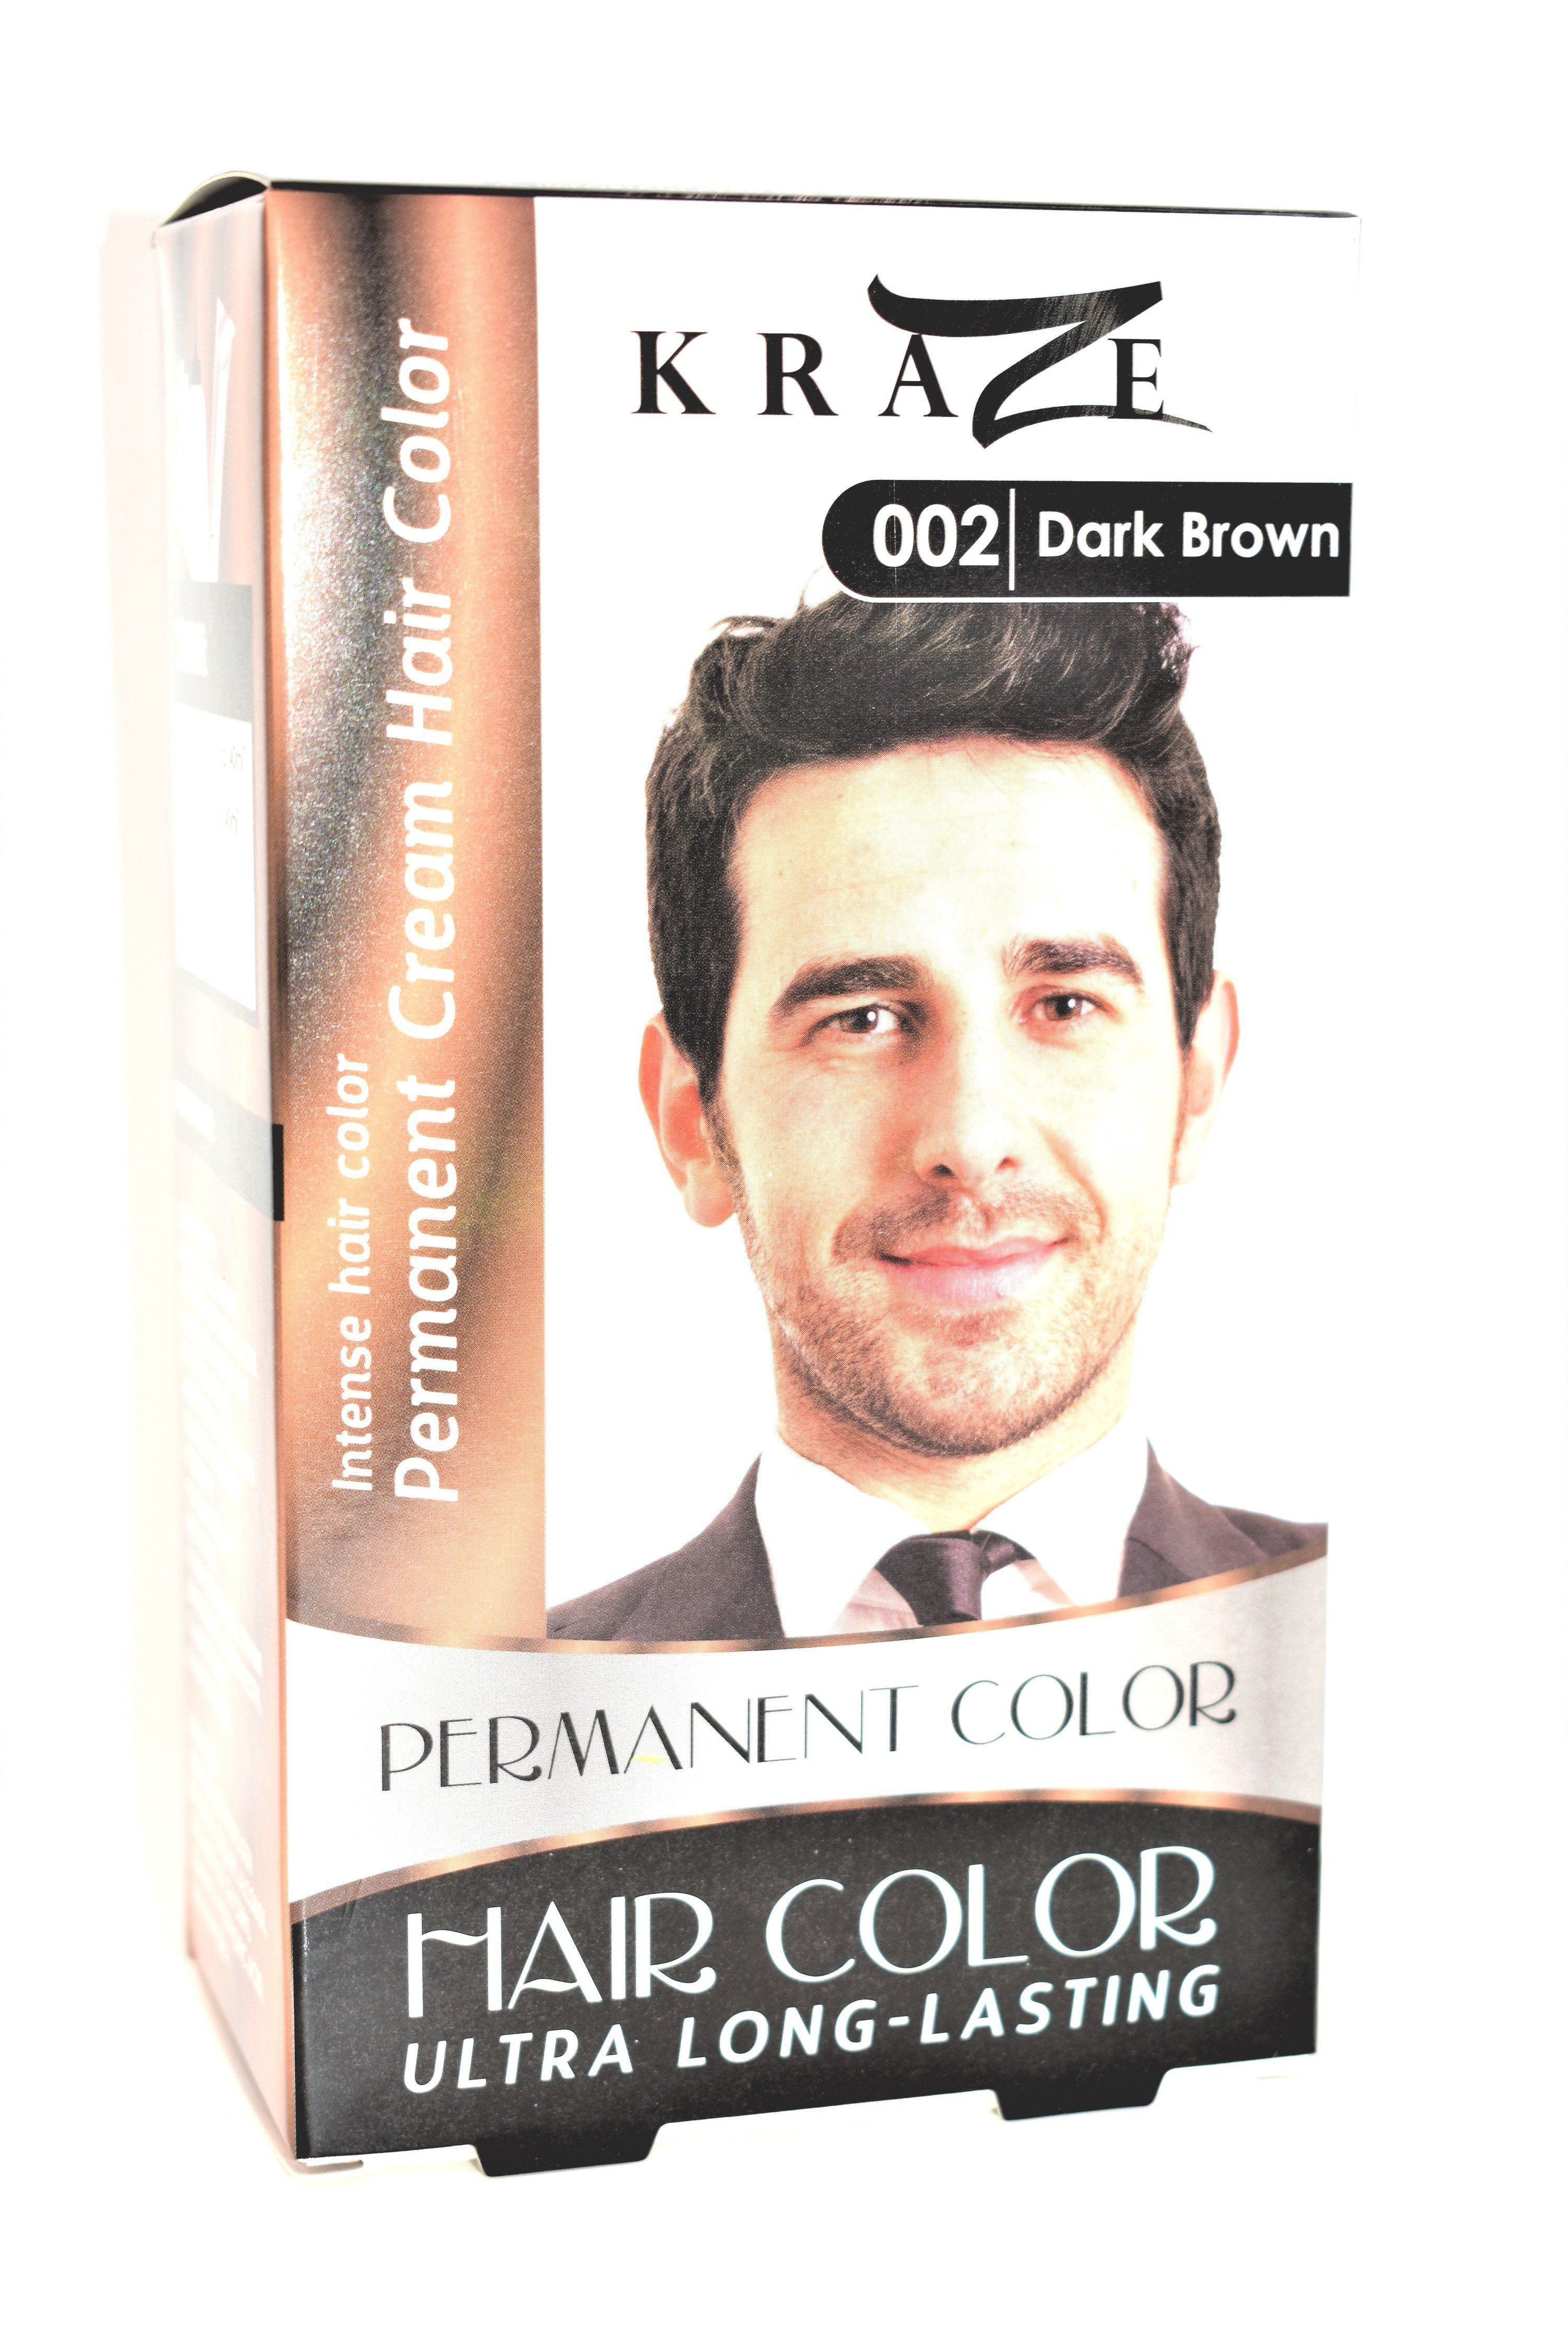 Kraze 002 Dark Brown Permanent Hair Color For Men in 2019 | Products ...